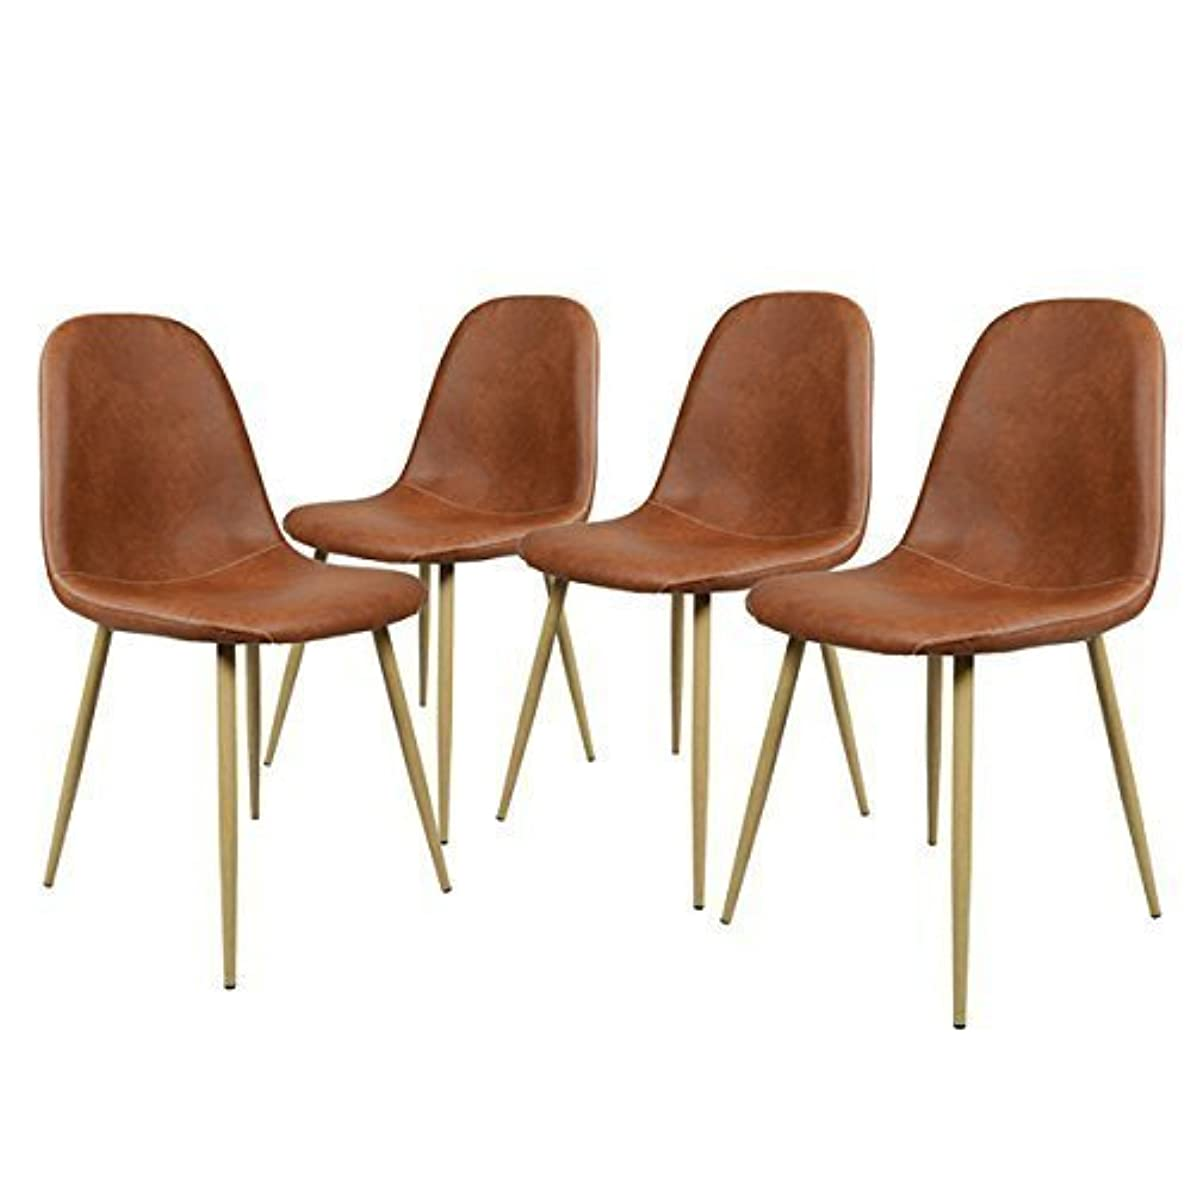 GreenForest Dining Side Chairs Washable Pu Cushion Seat Metal Legs for Dining Room Chairs Set of 4,Brown